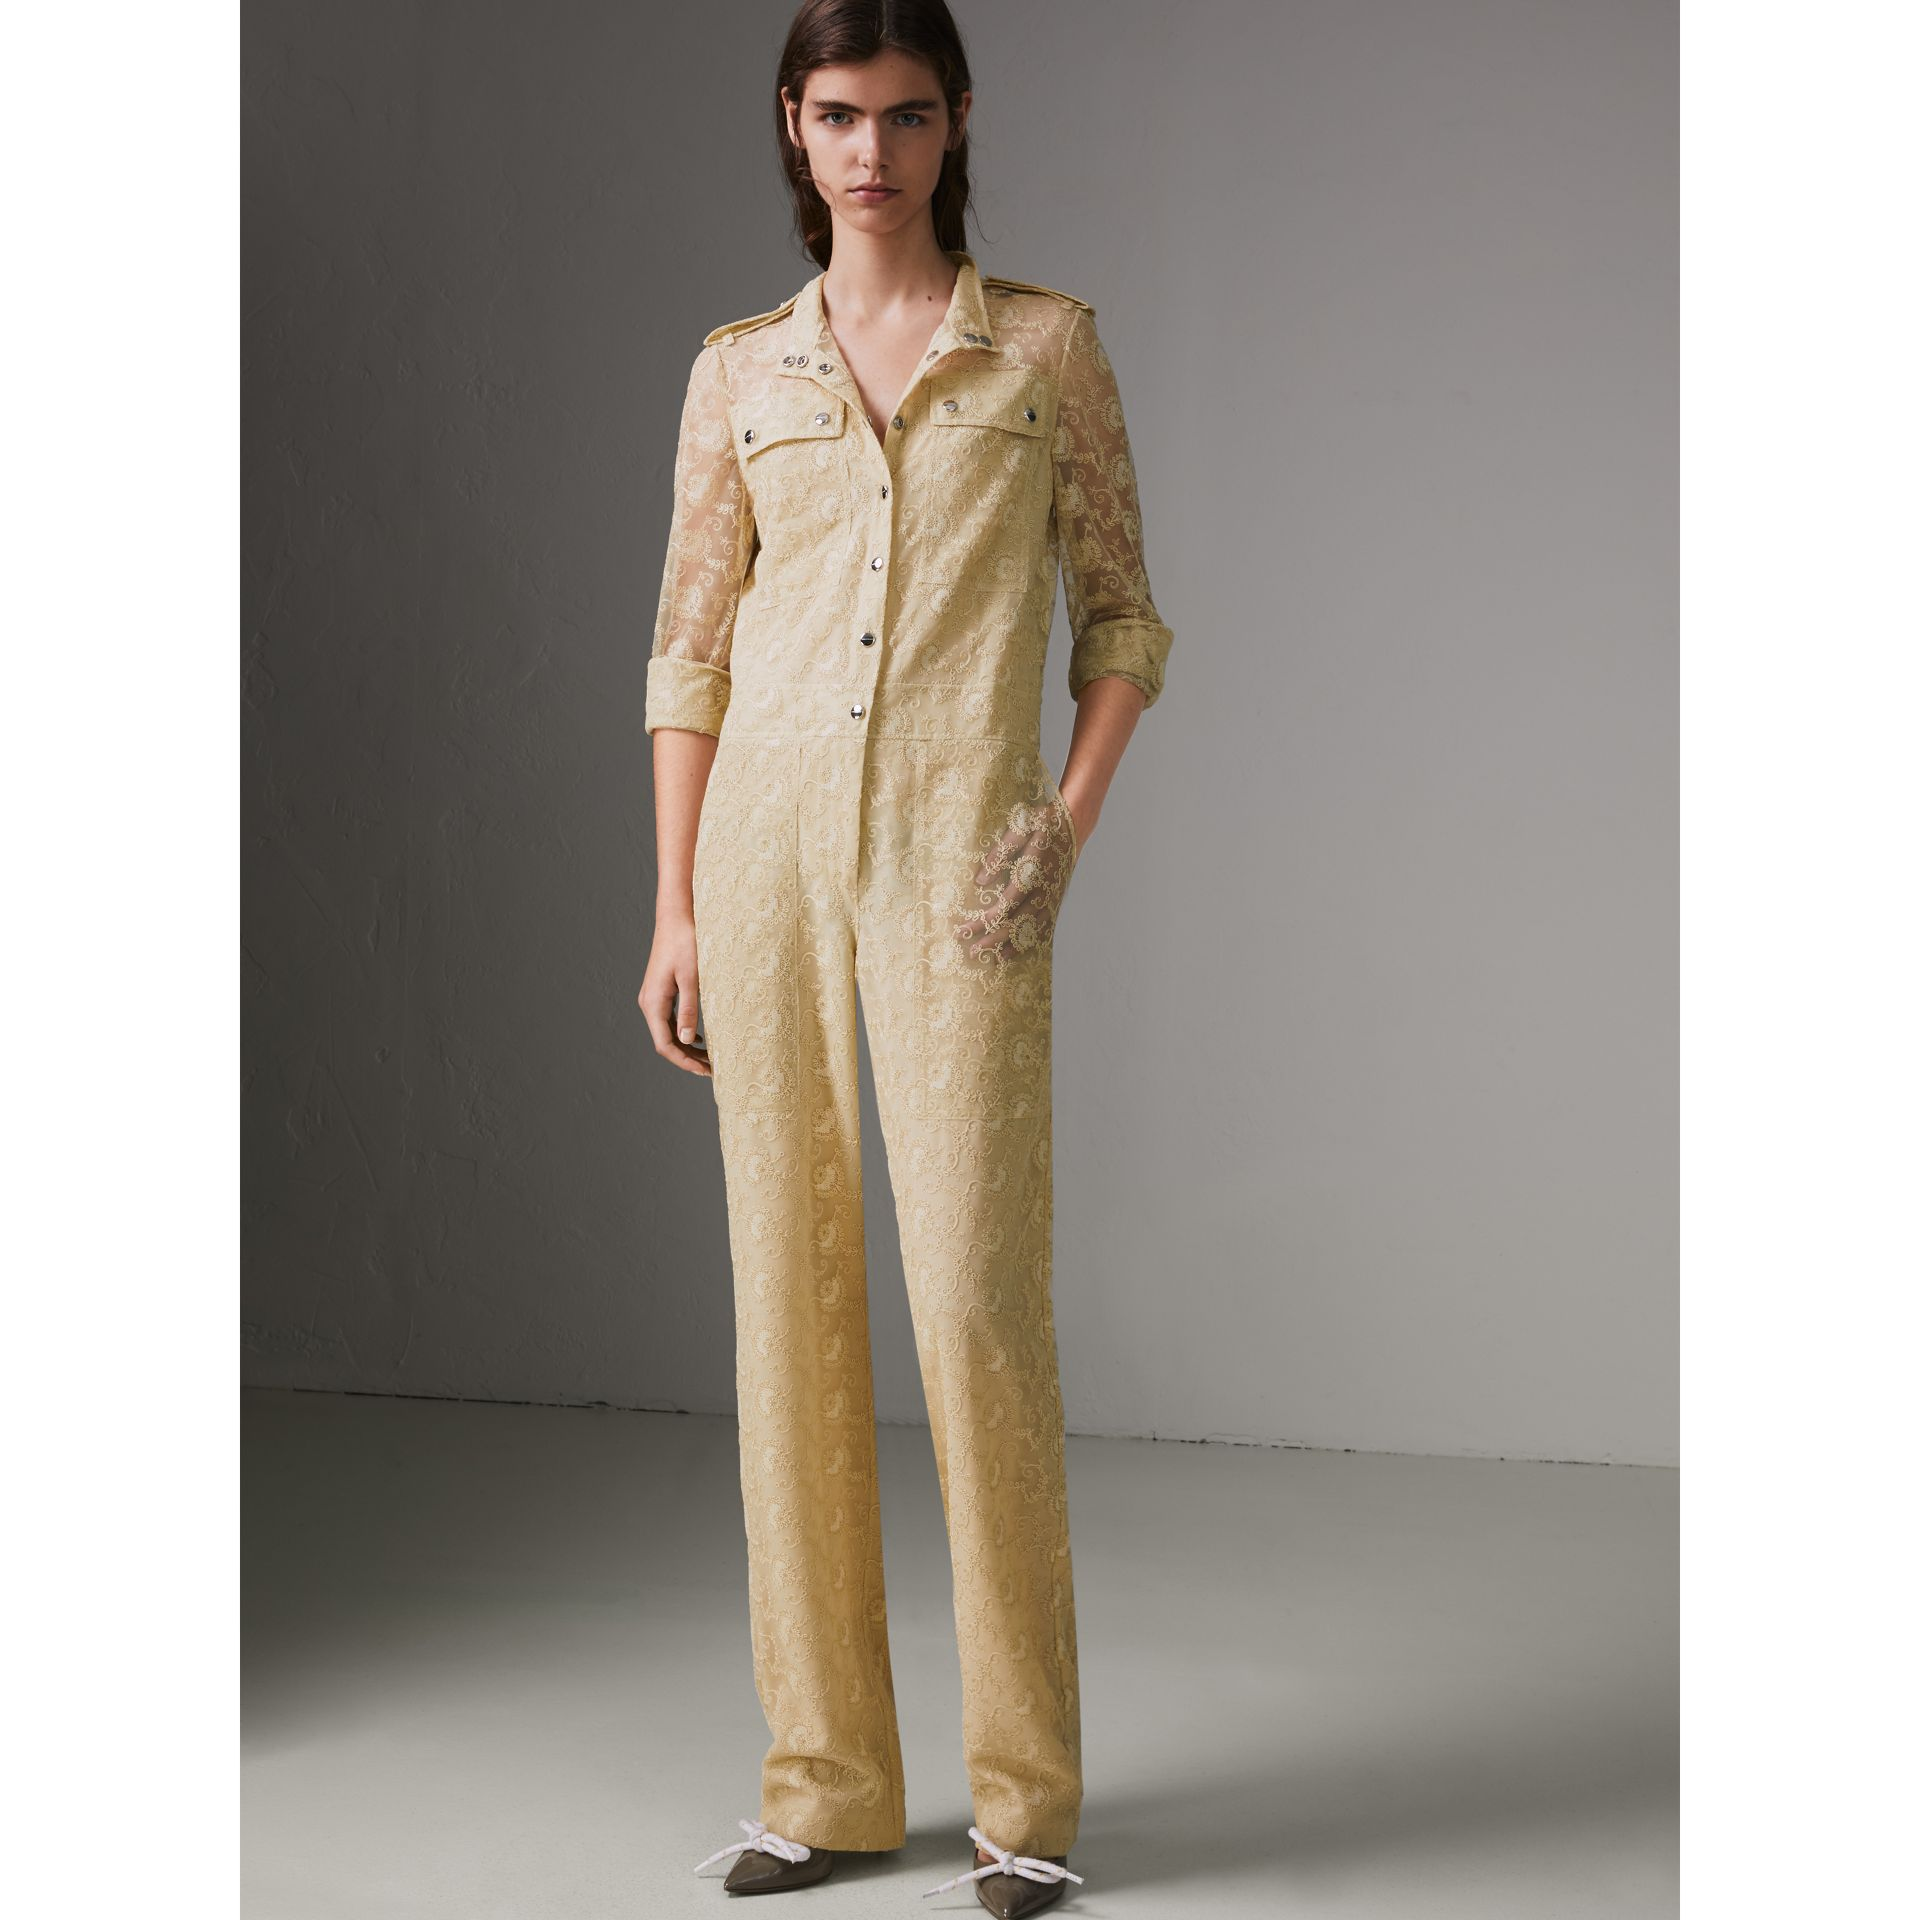 Floral Lace Jumpsuit in Pale Yellow - Women | Burberry - gallery image 3